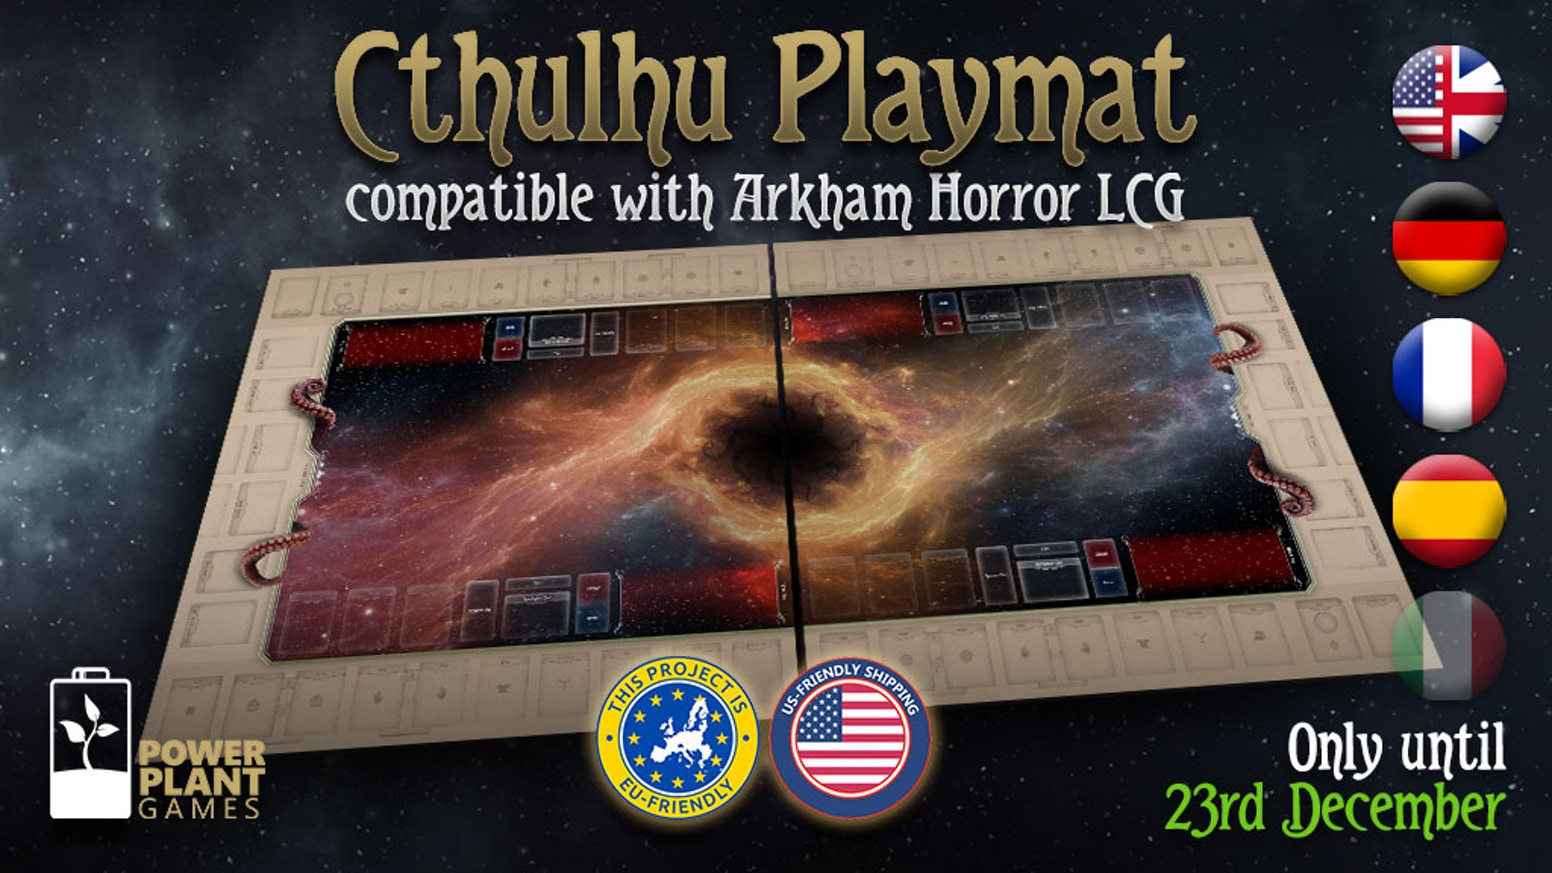 A non-official playmat designed for 1-2 players or 1 player with up to two investigators, compatible with  Arkham Horror LCG.